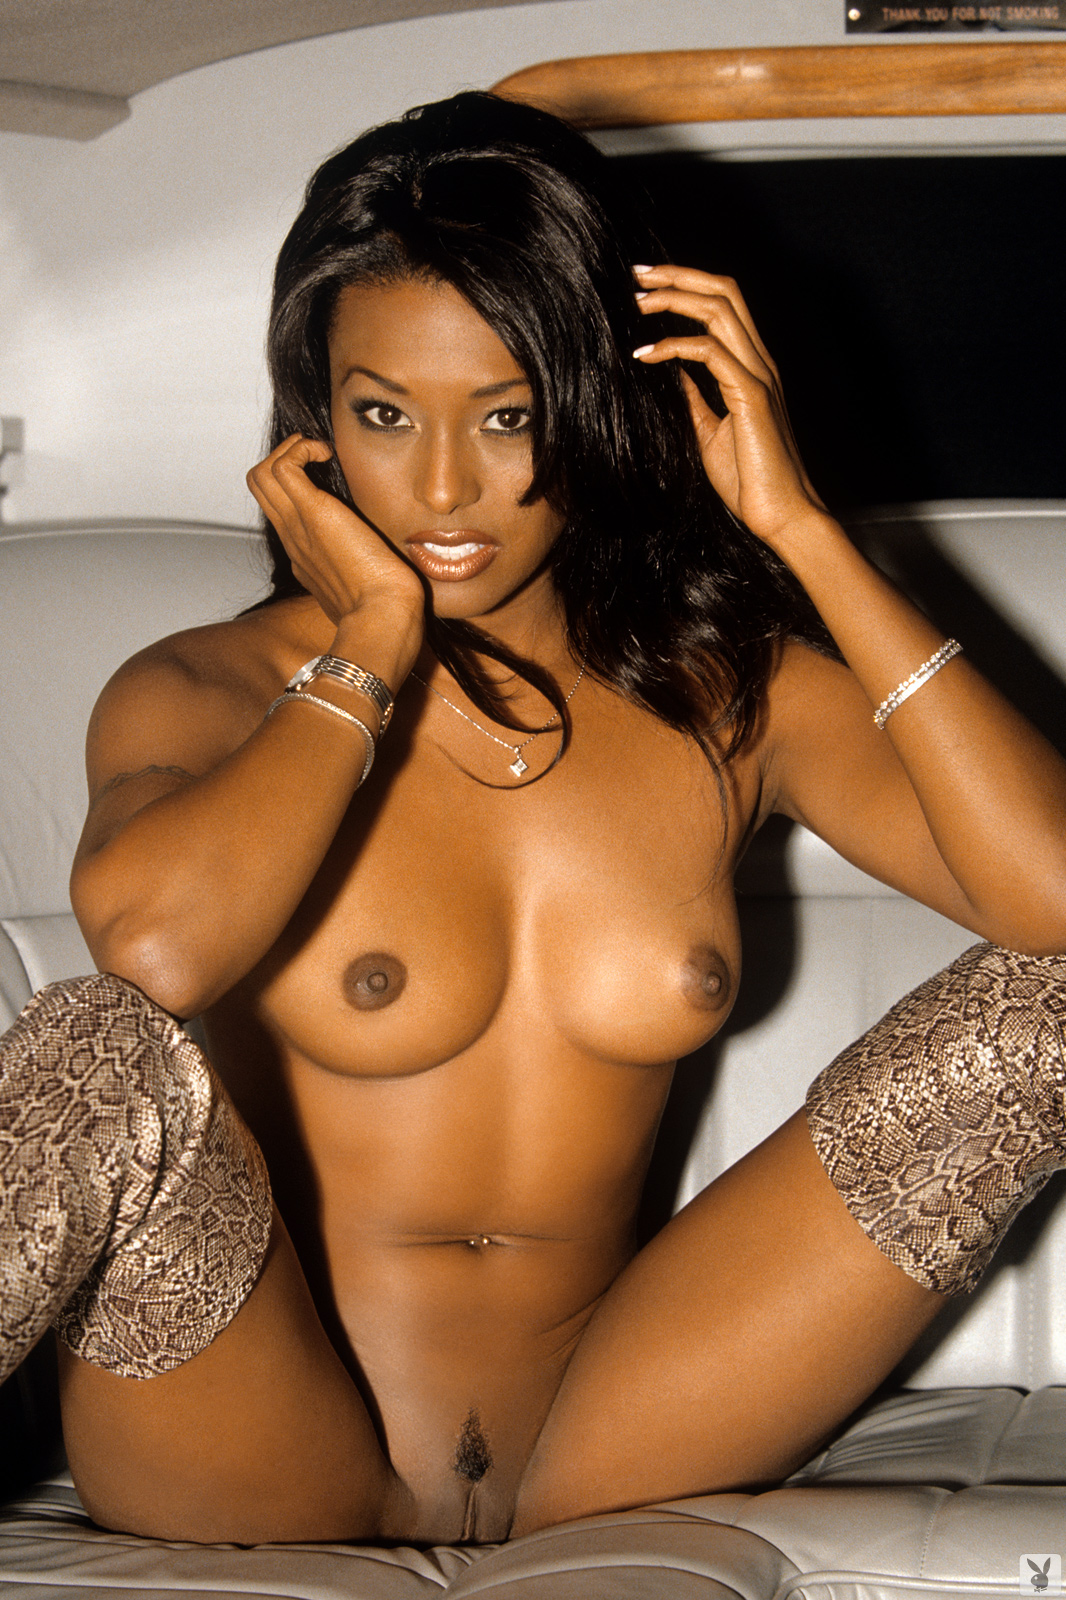 nudes Erotic ebony